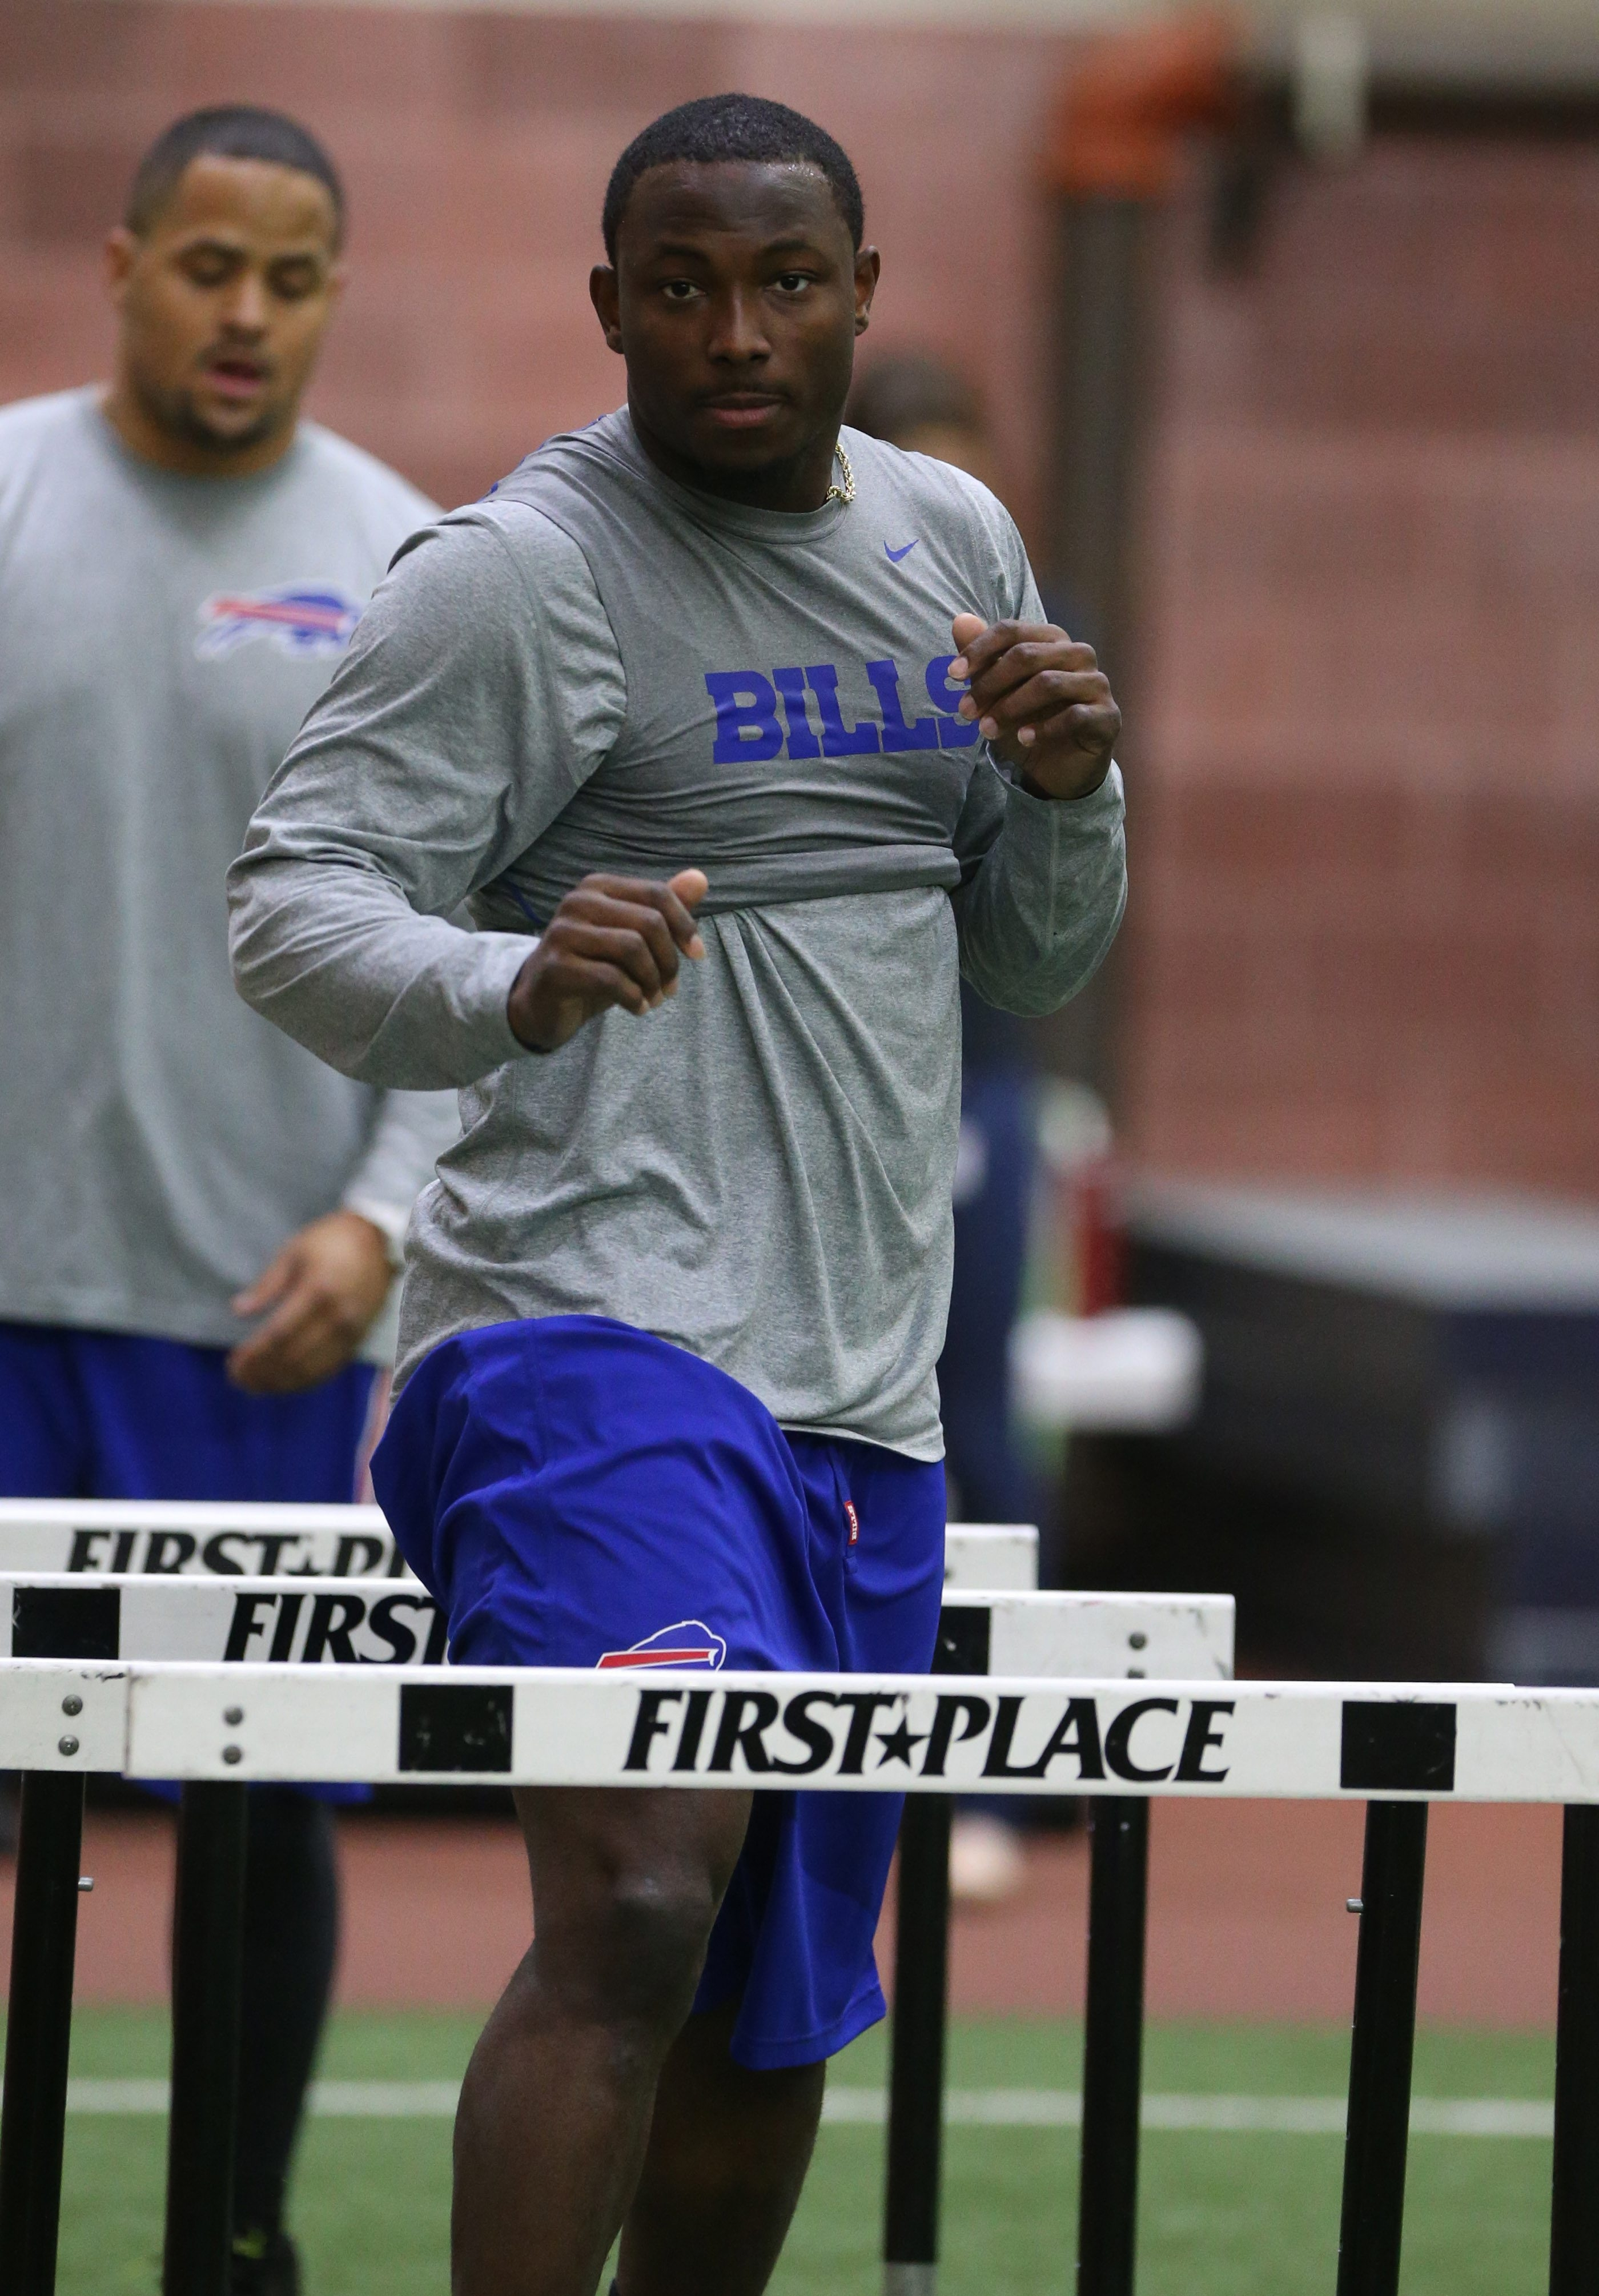 No charges issued against RB LeSean McCoy.